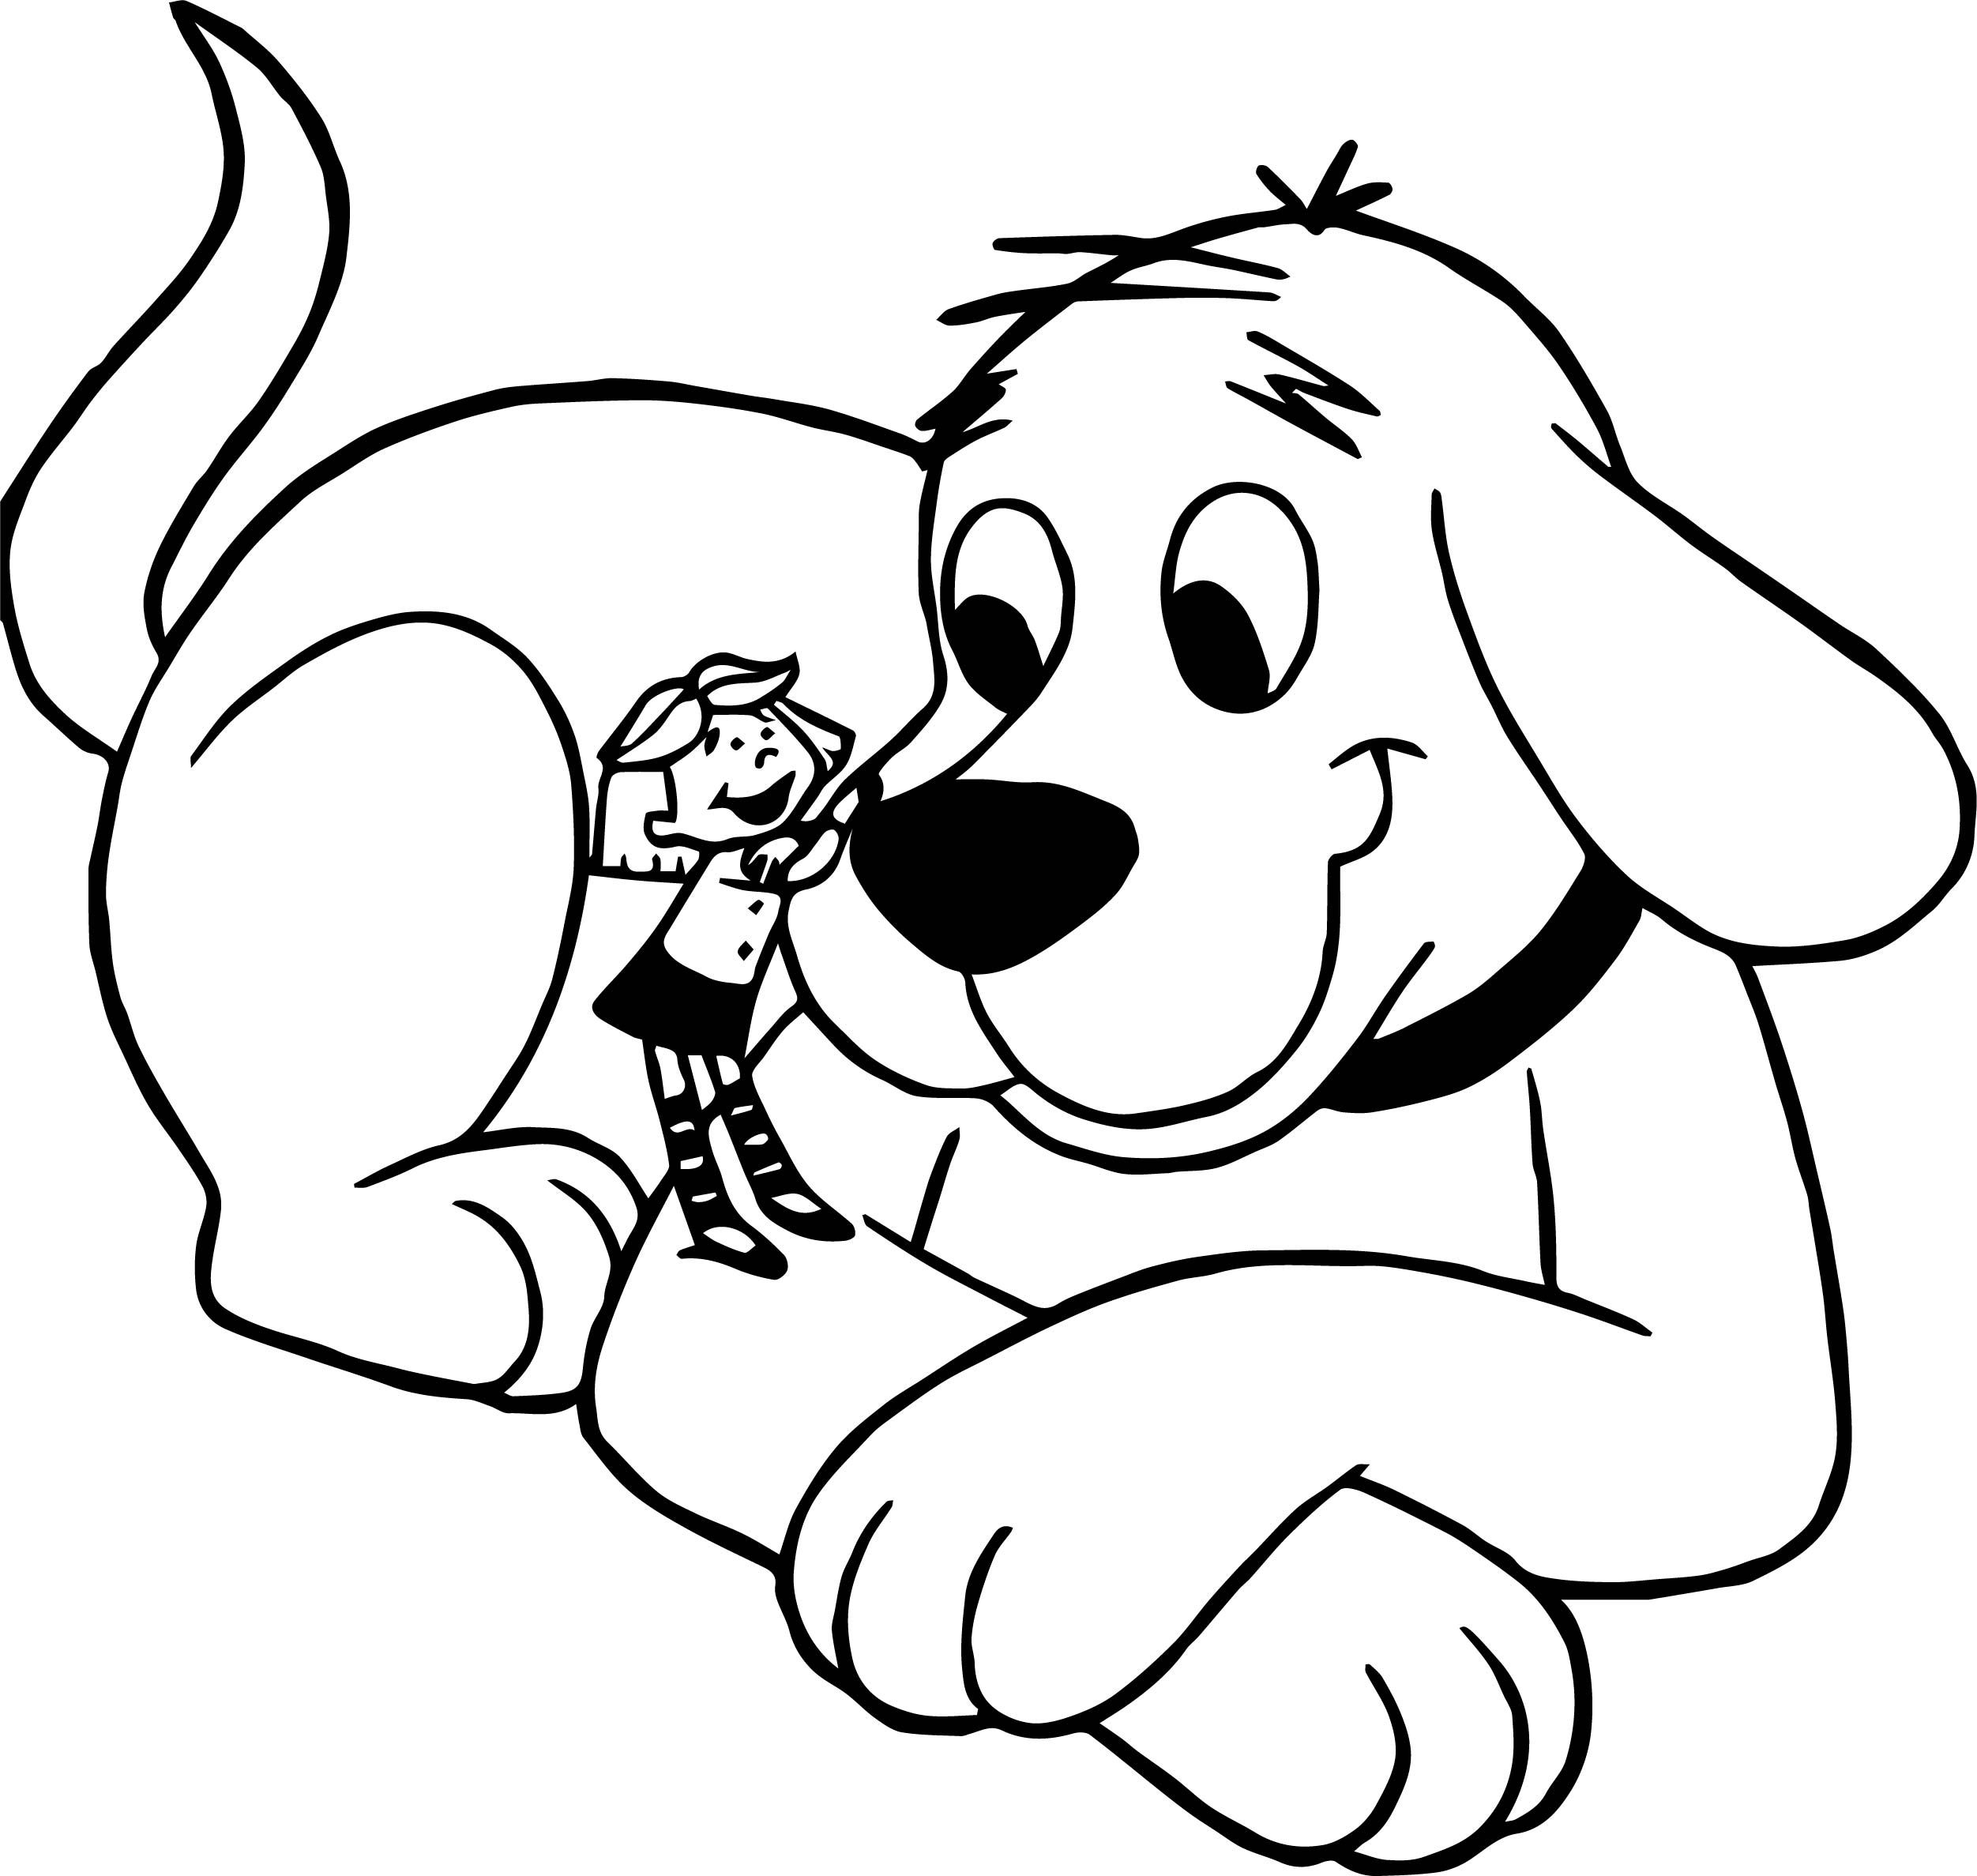 Cool Clifford The Big Red And Small Girl Dog Coloring Page Dog Coloring Page Coloring Pages Coloring Books